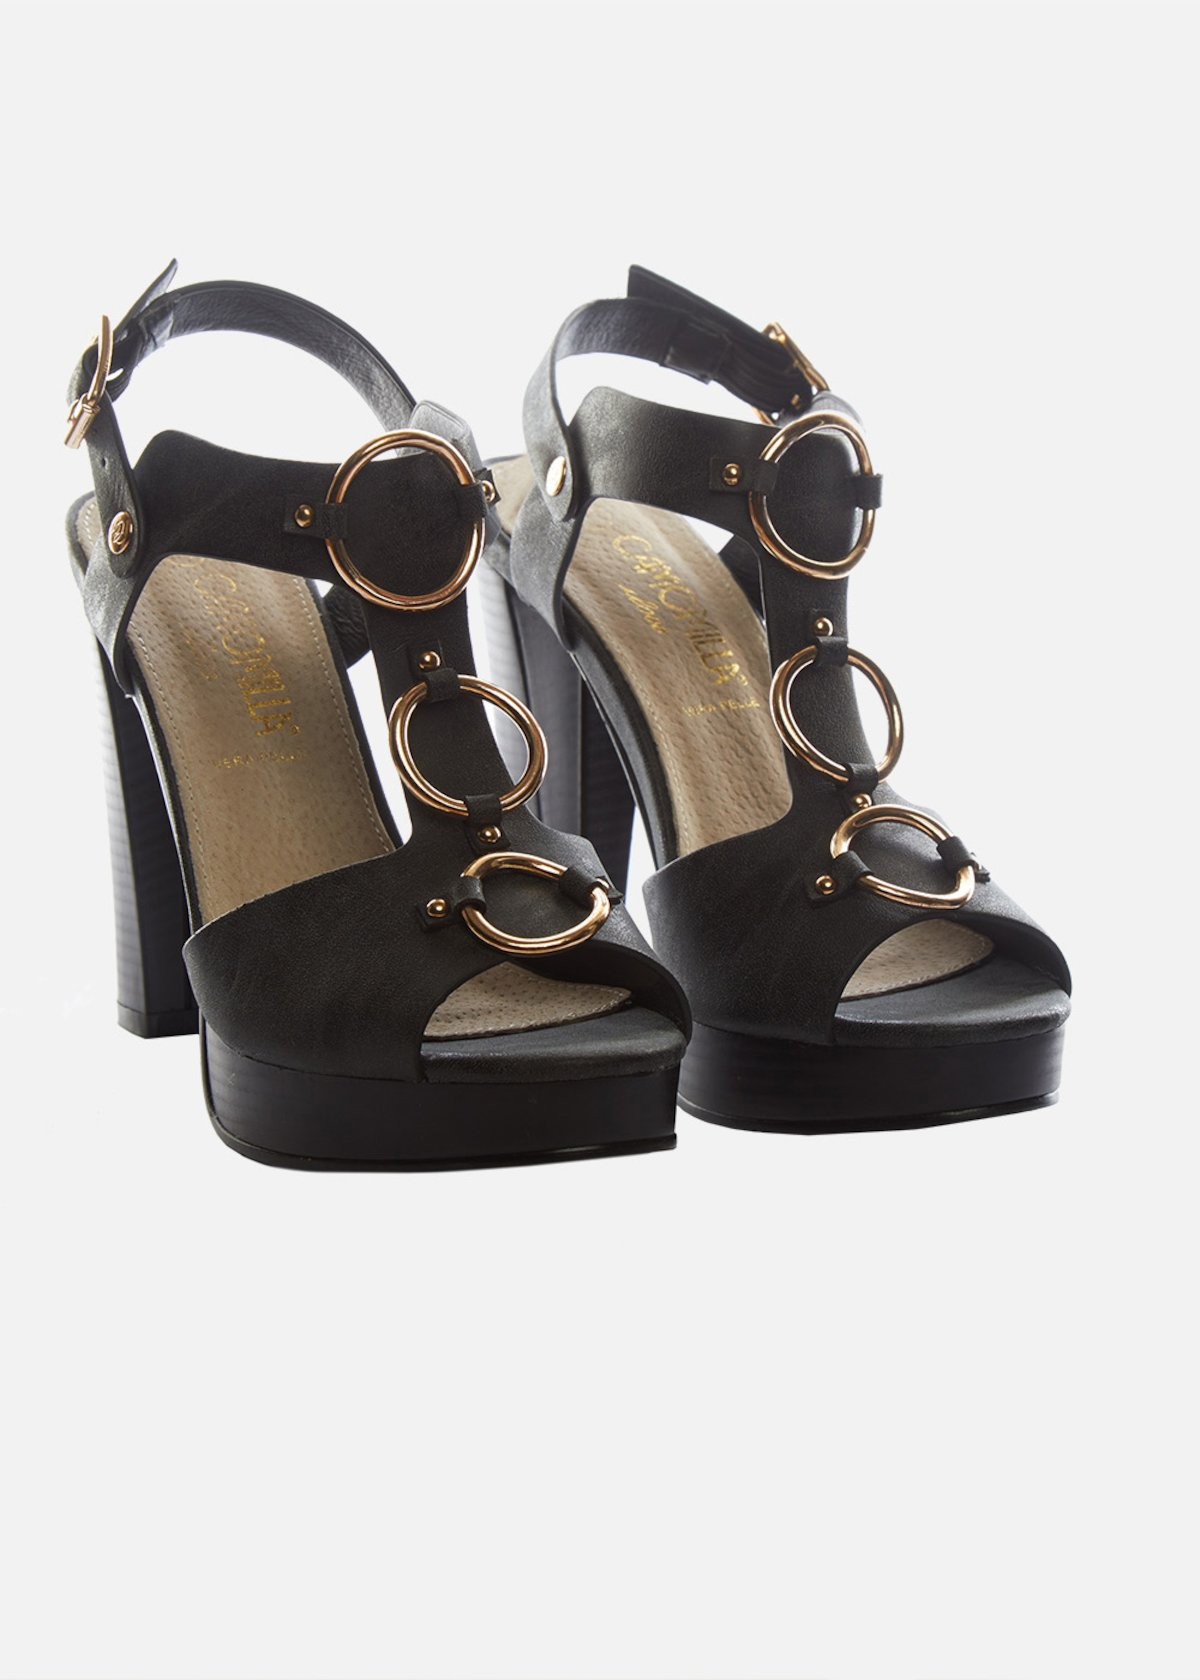 Simmini High Heel Sandals With Gold Rings Detail  384bc01149b